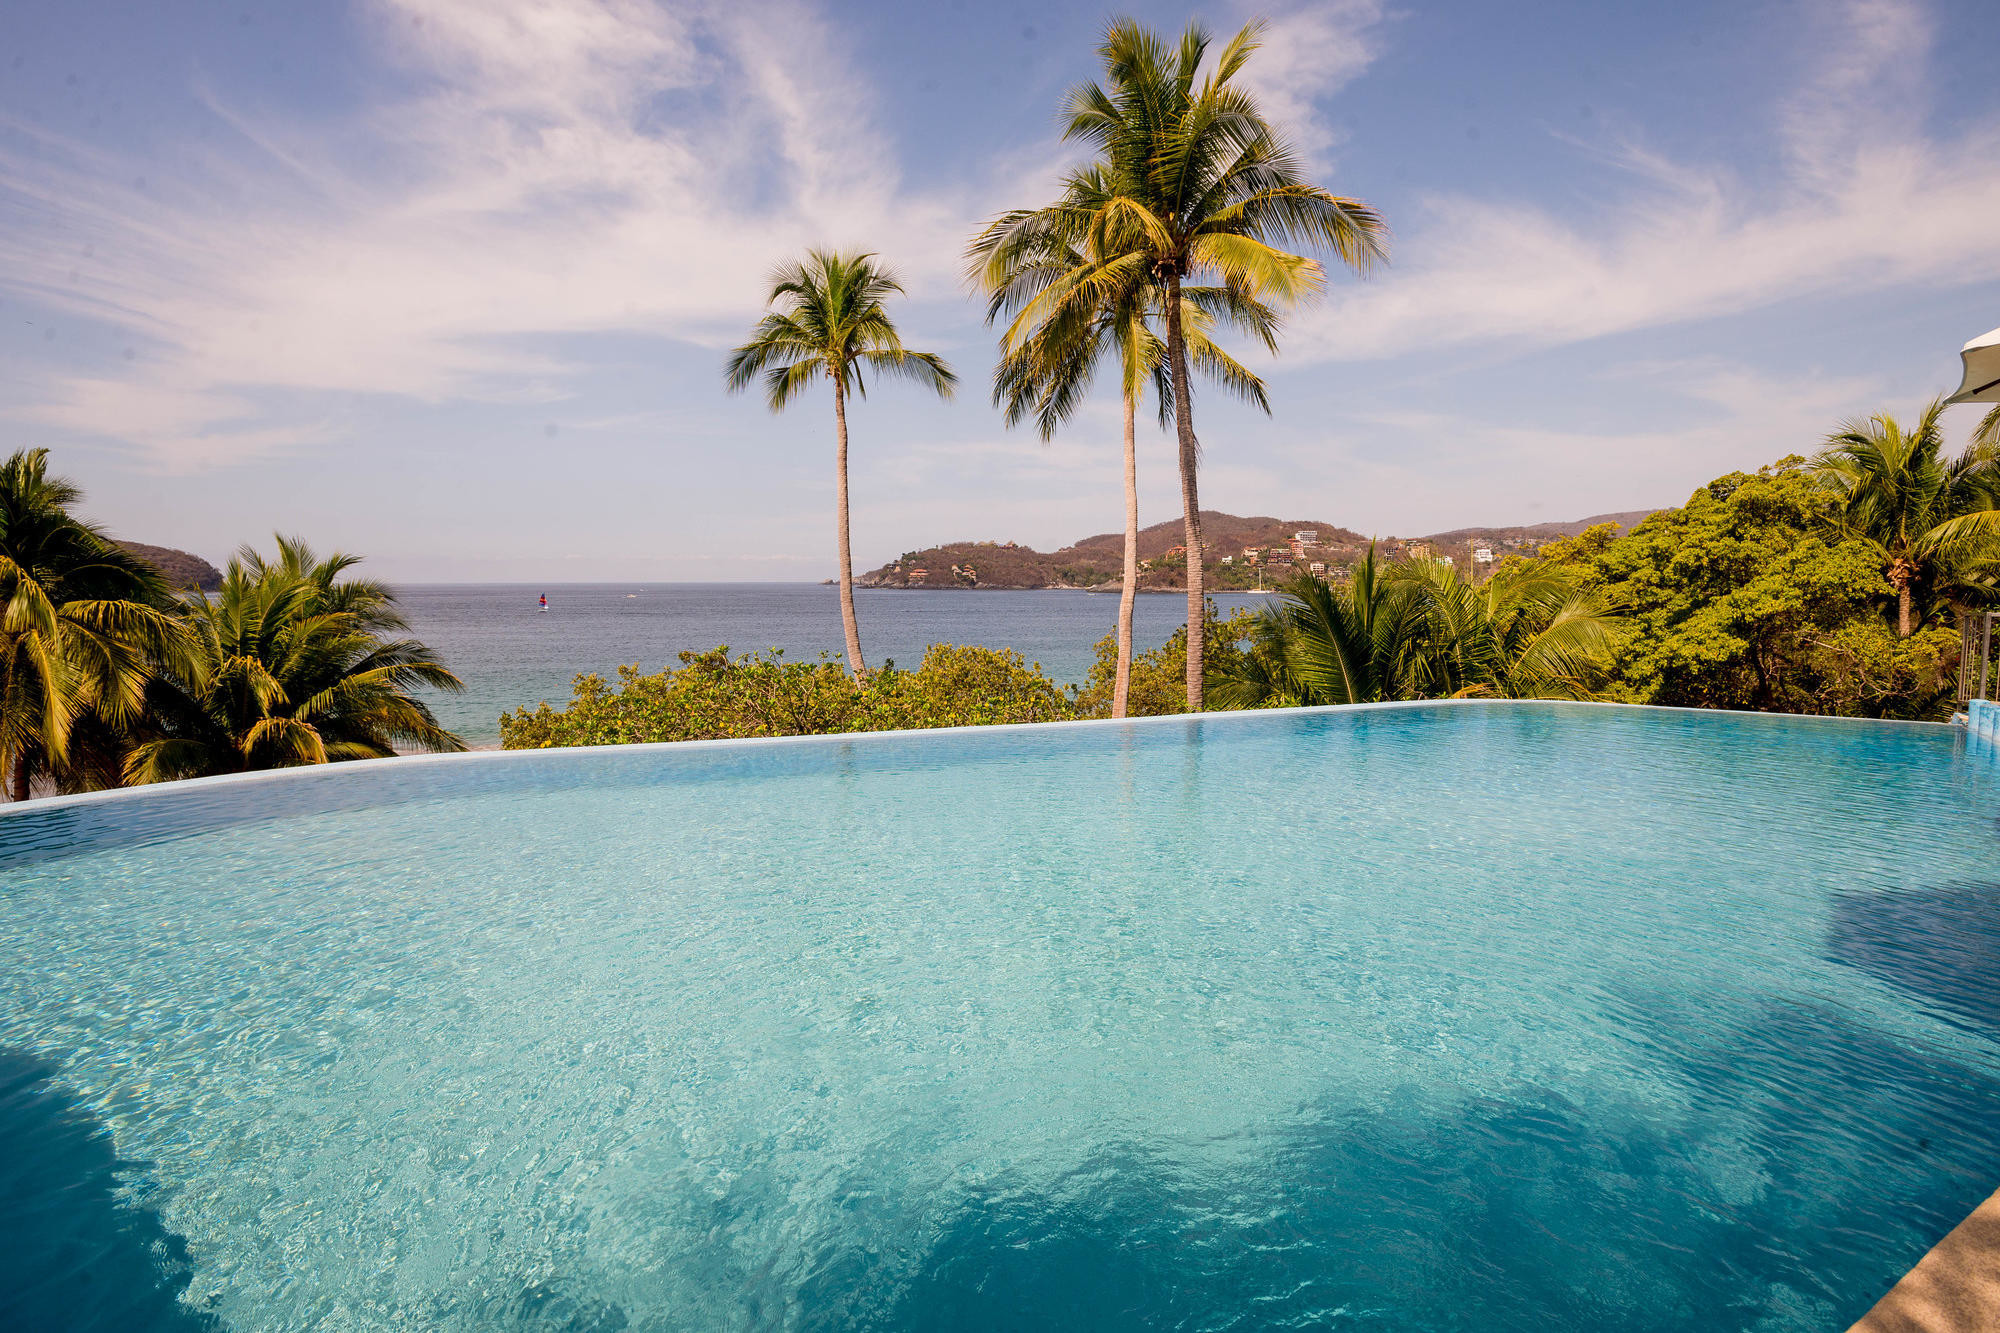 The pool and bay view at Catalina Beach Resort in Zihuatanejo/Oyster